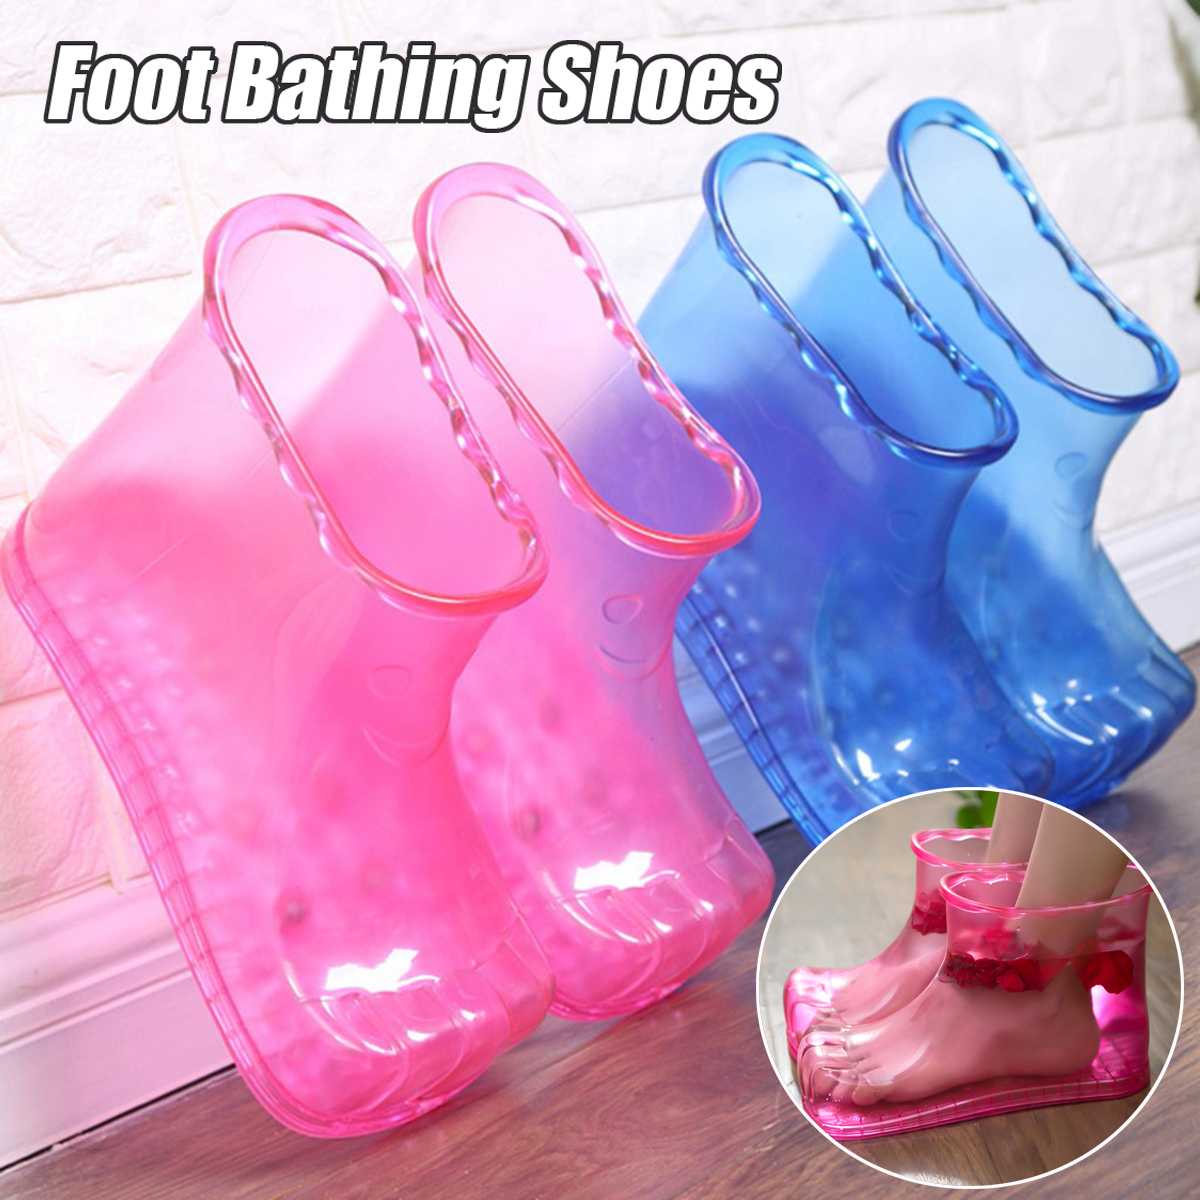 Foot Soak Bath Therapy Massage Shoes Ankle Boots Sole Relaxation Home Feet Care Hot water Neutral Foot Soak 25.6cm